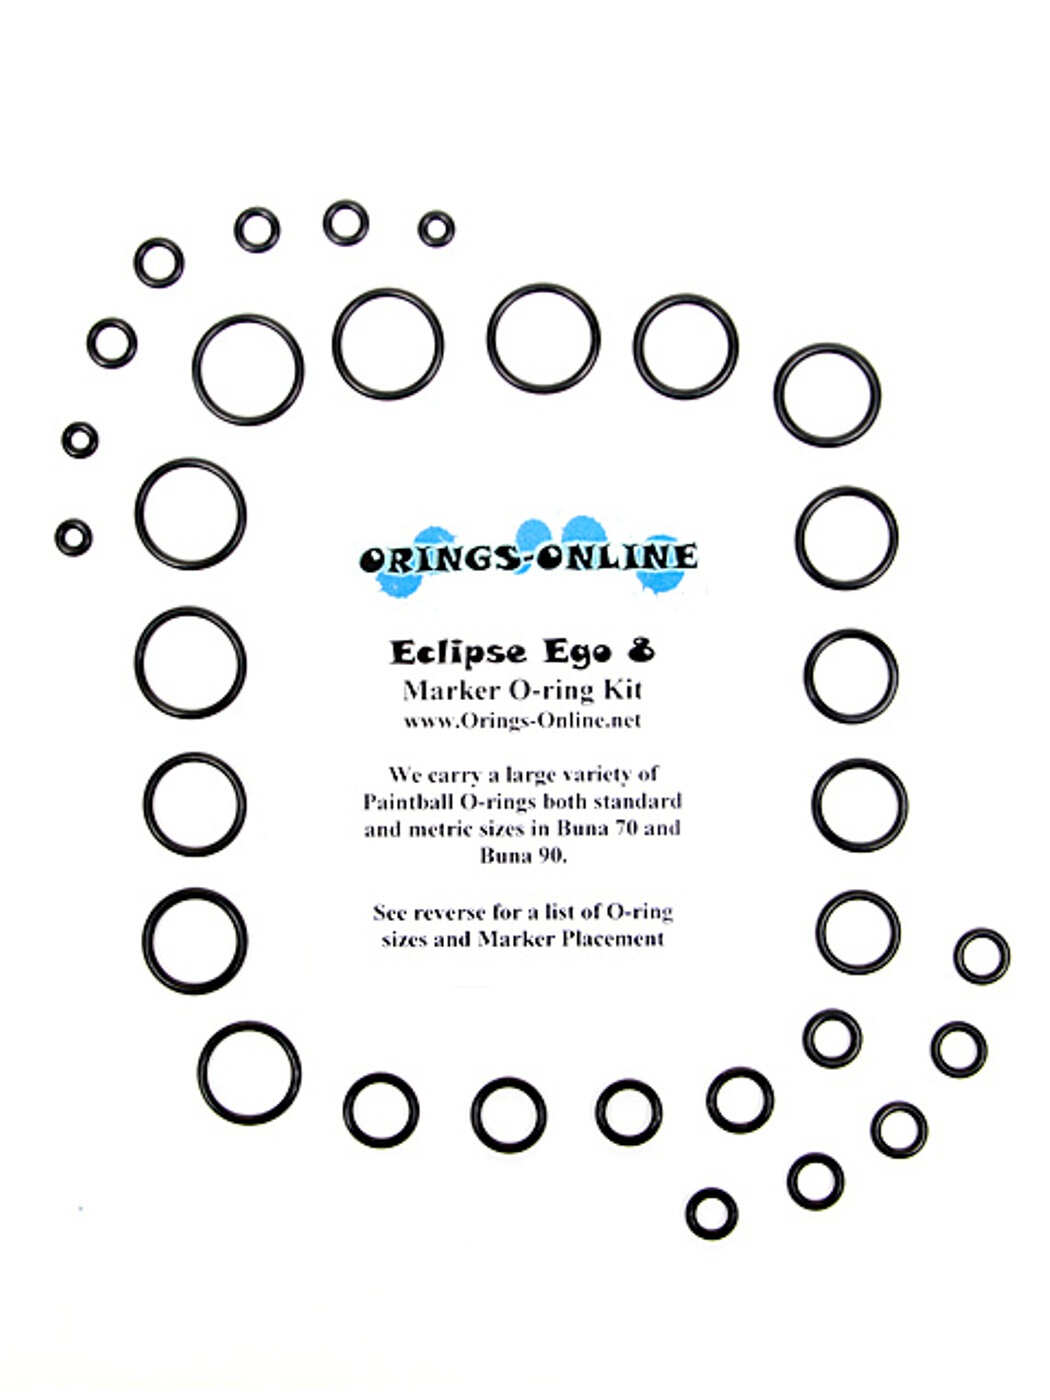 Planet Eclipse Ego 8 Marker O-ring Kit